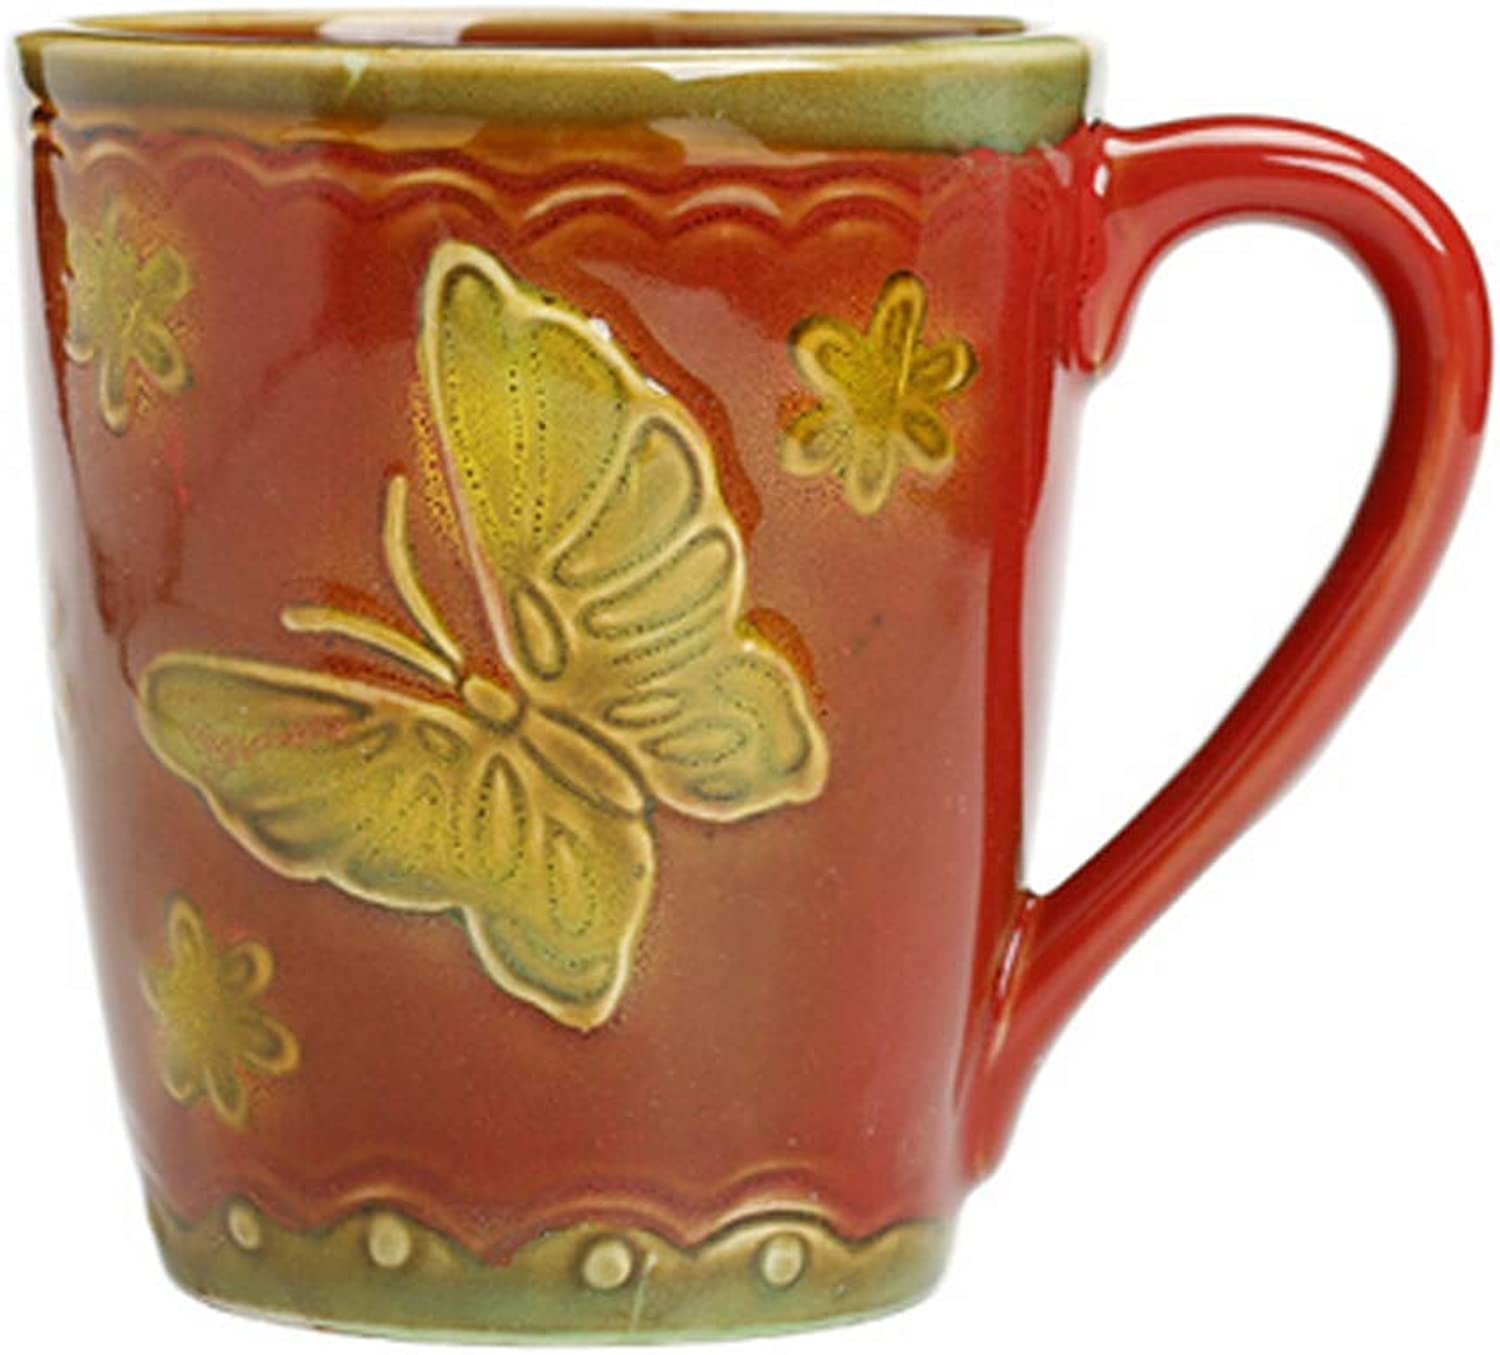 Guyuexuan Ceramic Cup Retro Personality Cup Milk Cup Coffee Cup Office Cup Latest Models